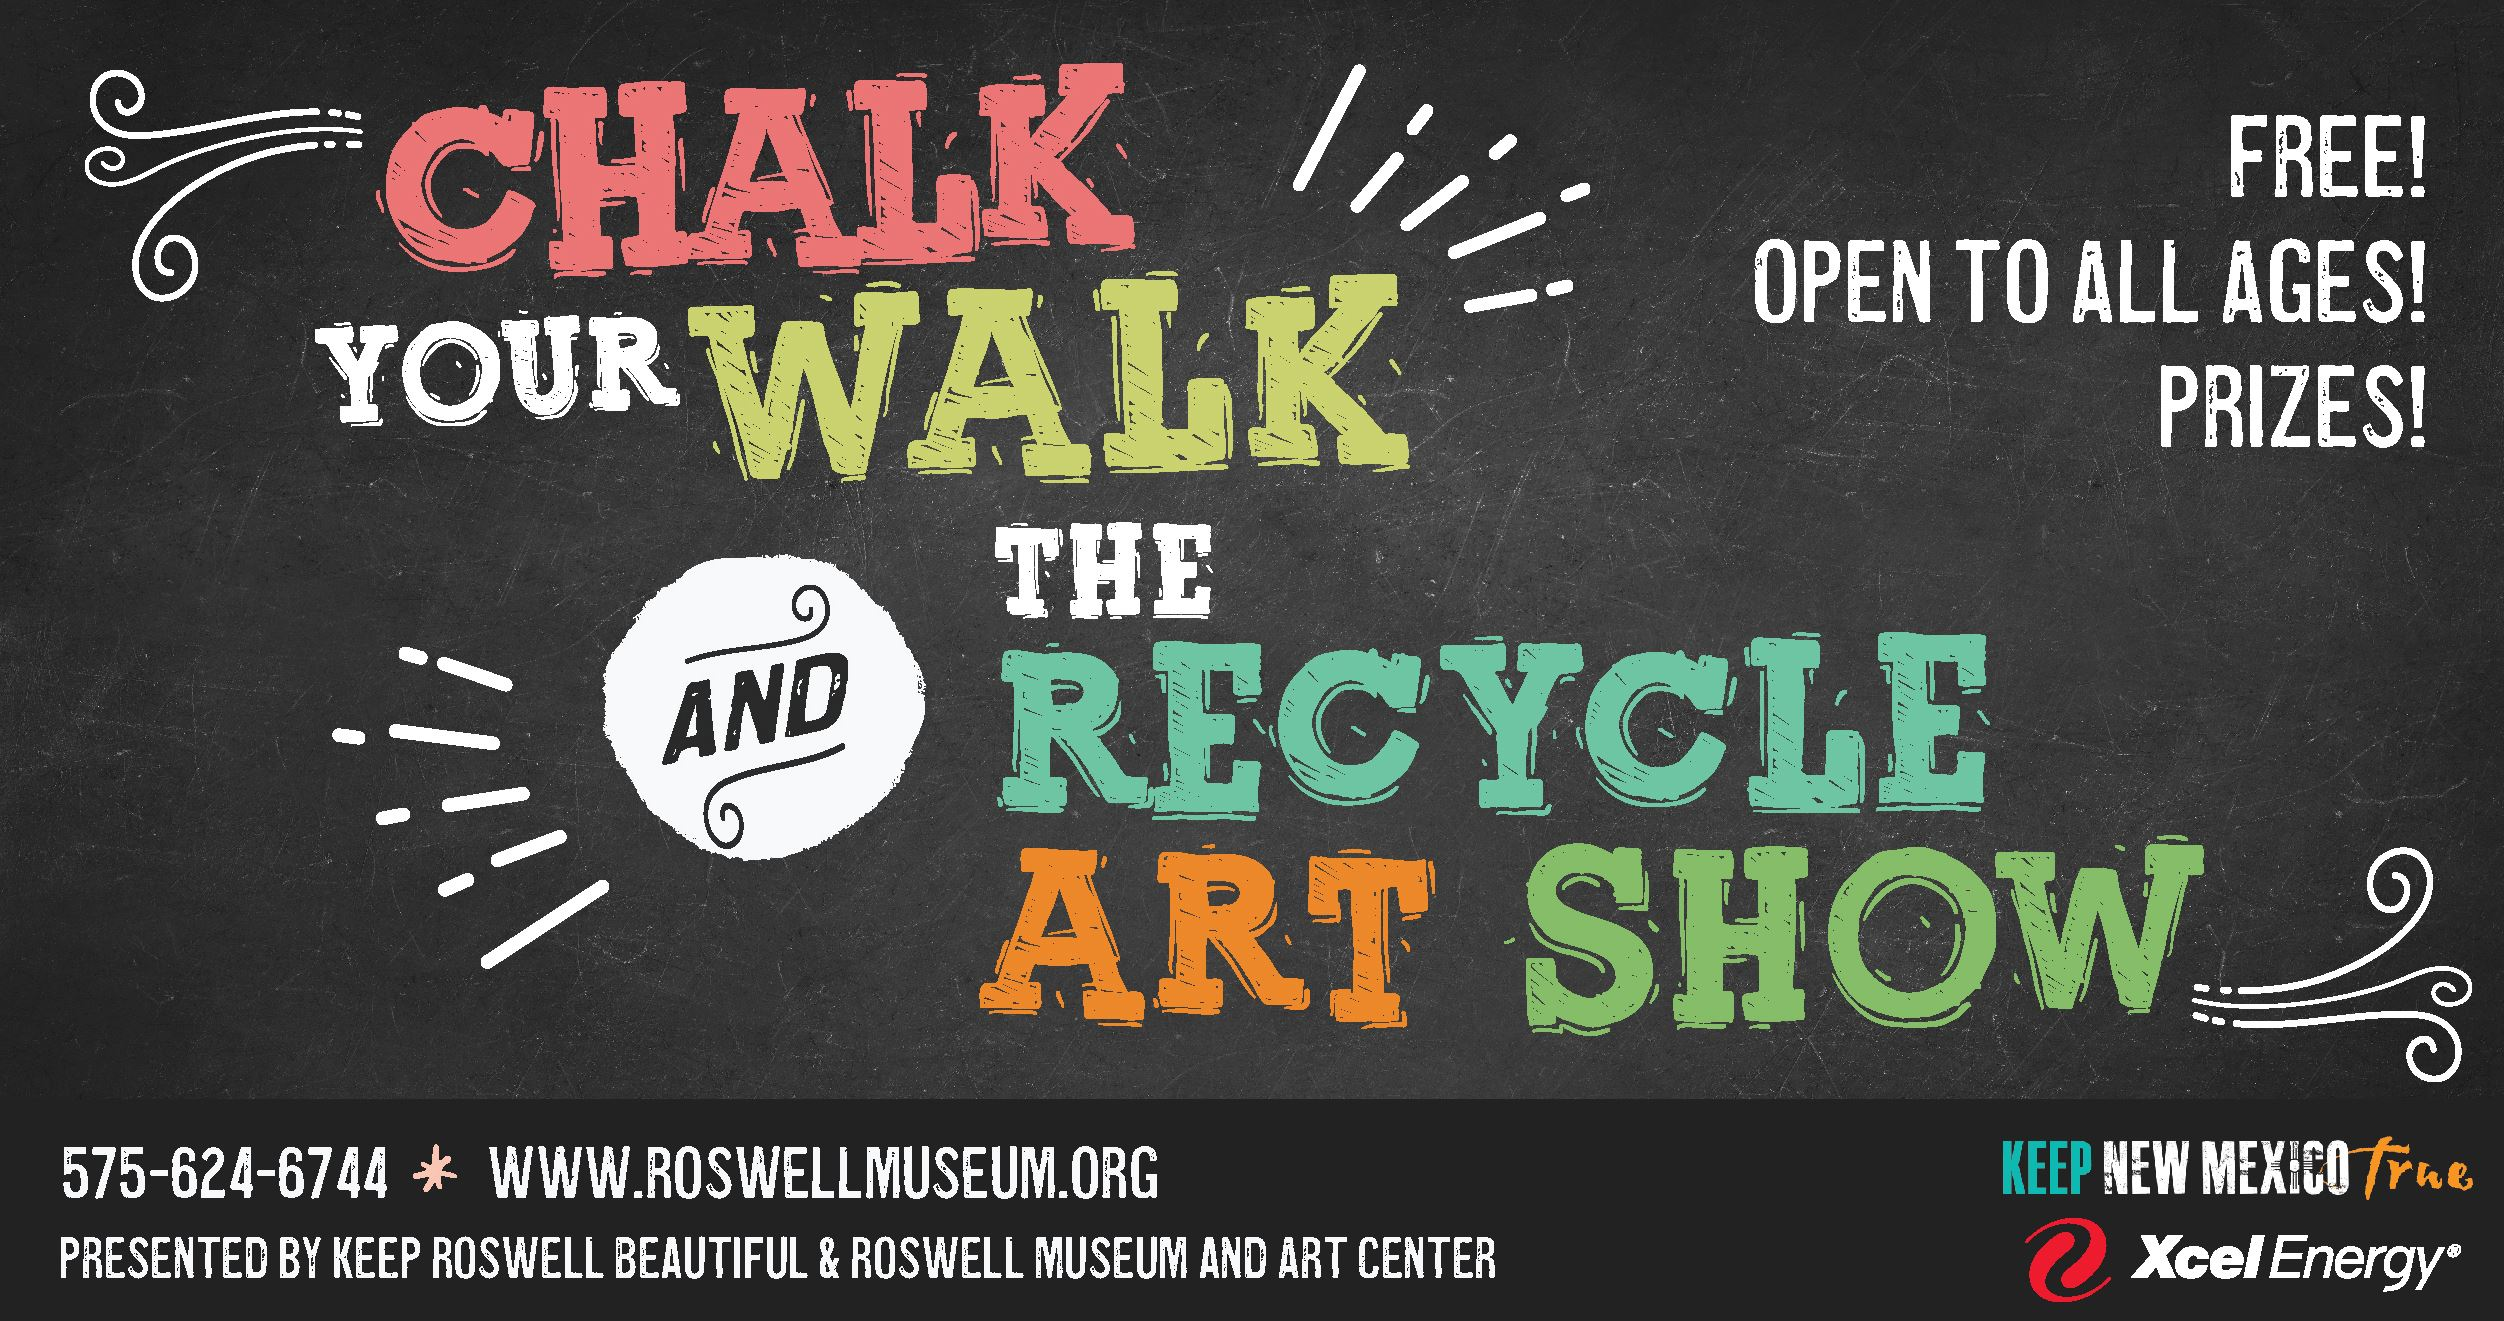 Infographic describing Chalk Your Walk and Recycle Art Show